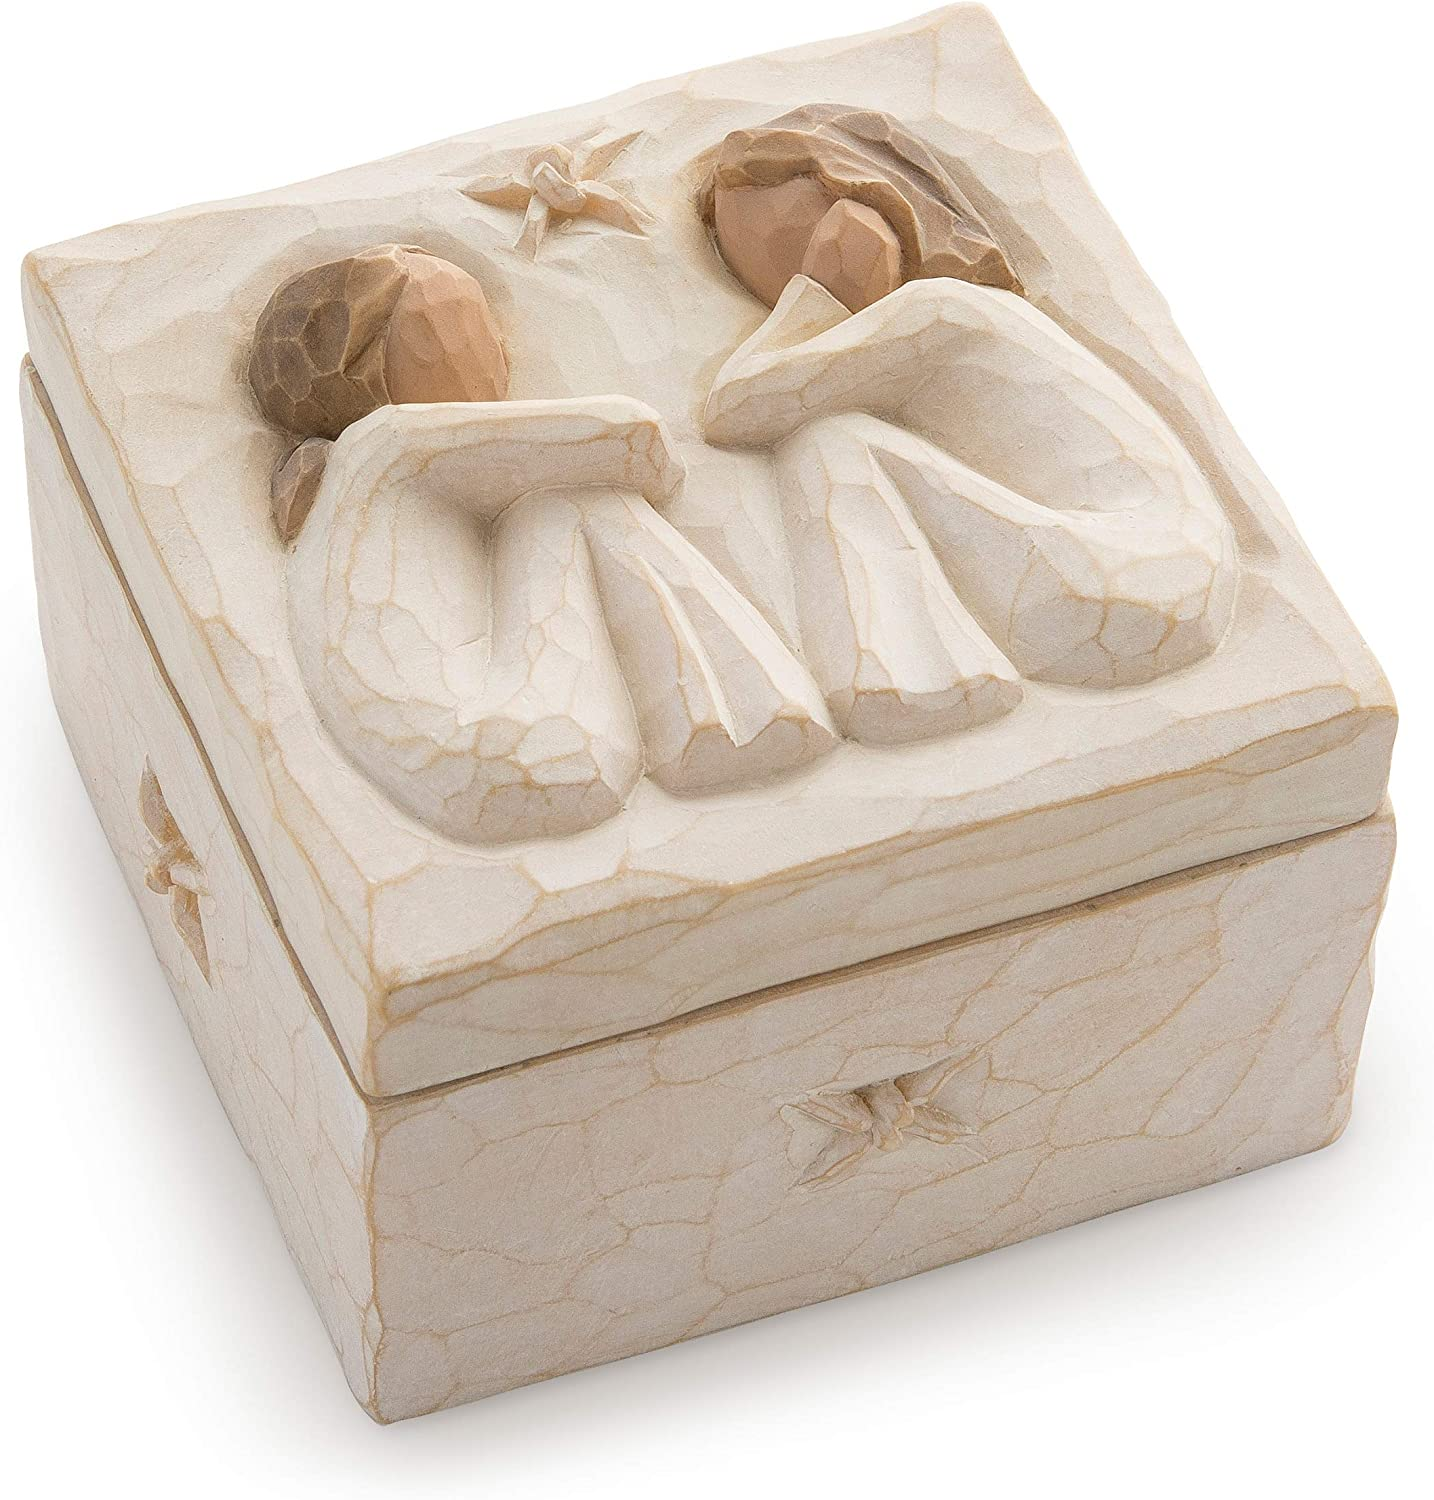 This is an image of a box with sculpted figures on top of it.